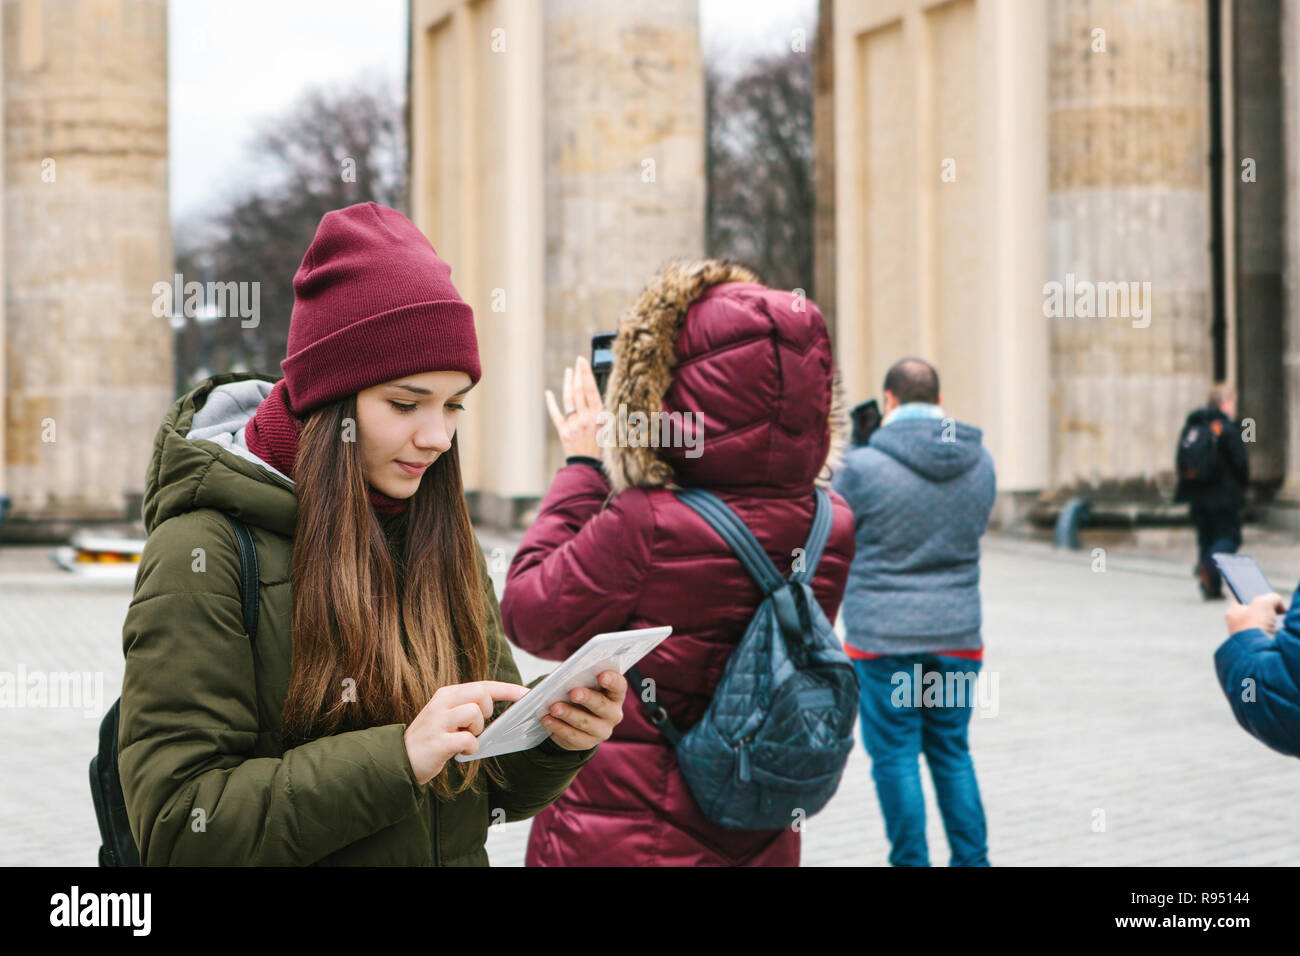 A beautiful tourist girl uses a tablet in the square next to the Brandenburg Gate in Berlin. Nearby unrecognized people take photos of sights. People and modern technology. Tourism - Stock Image